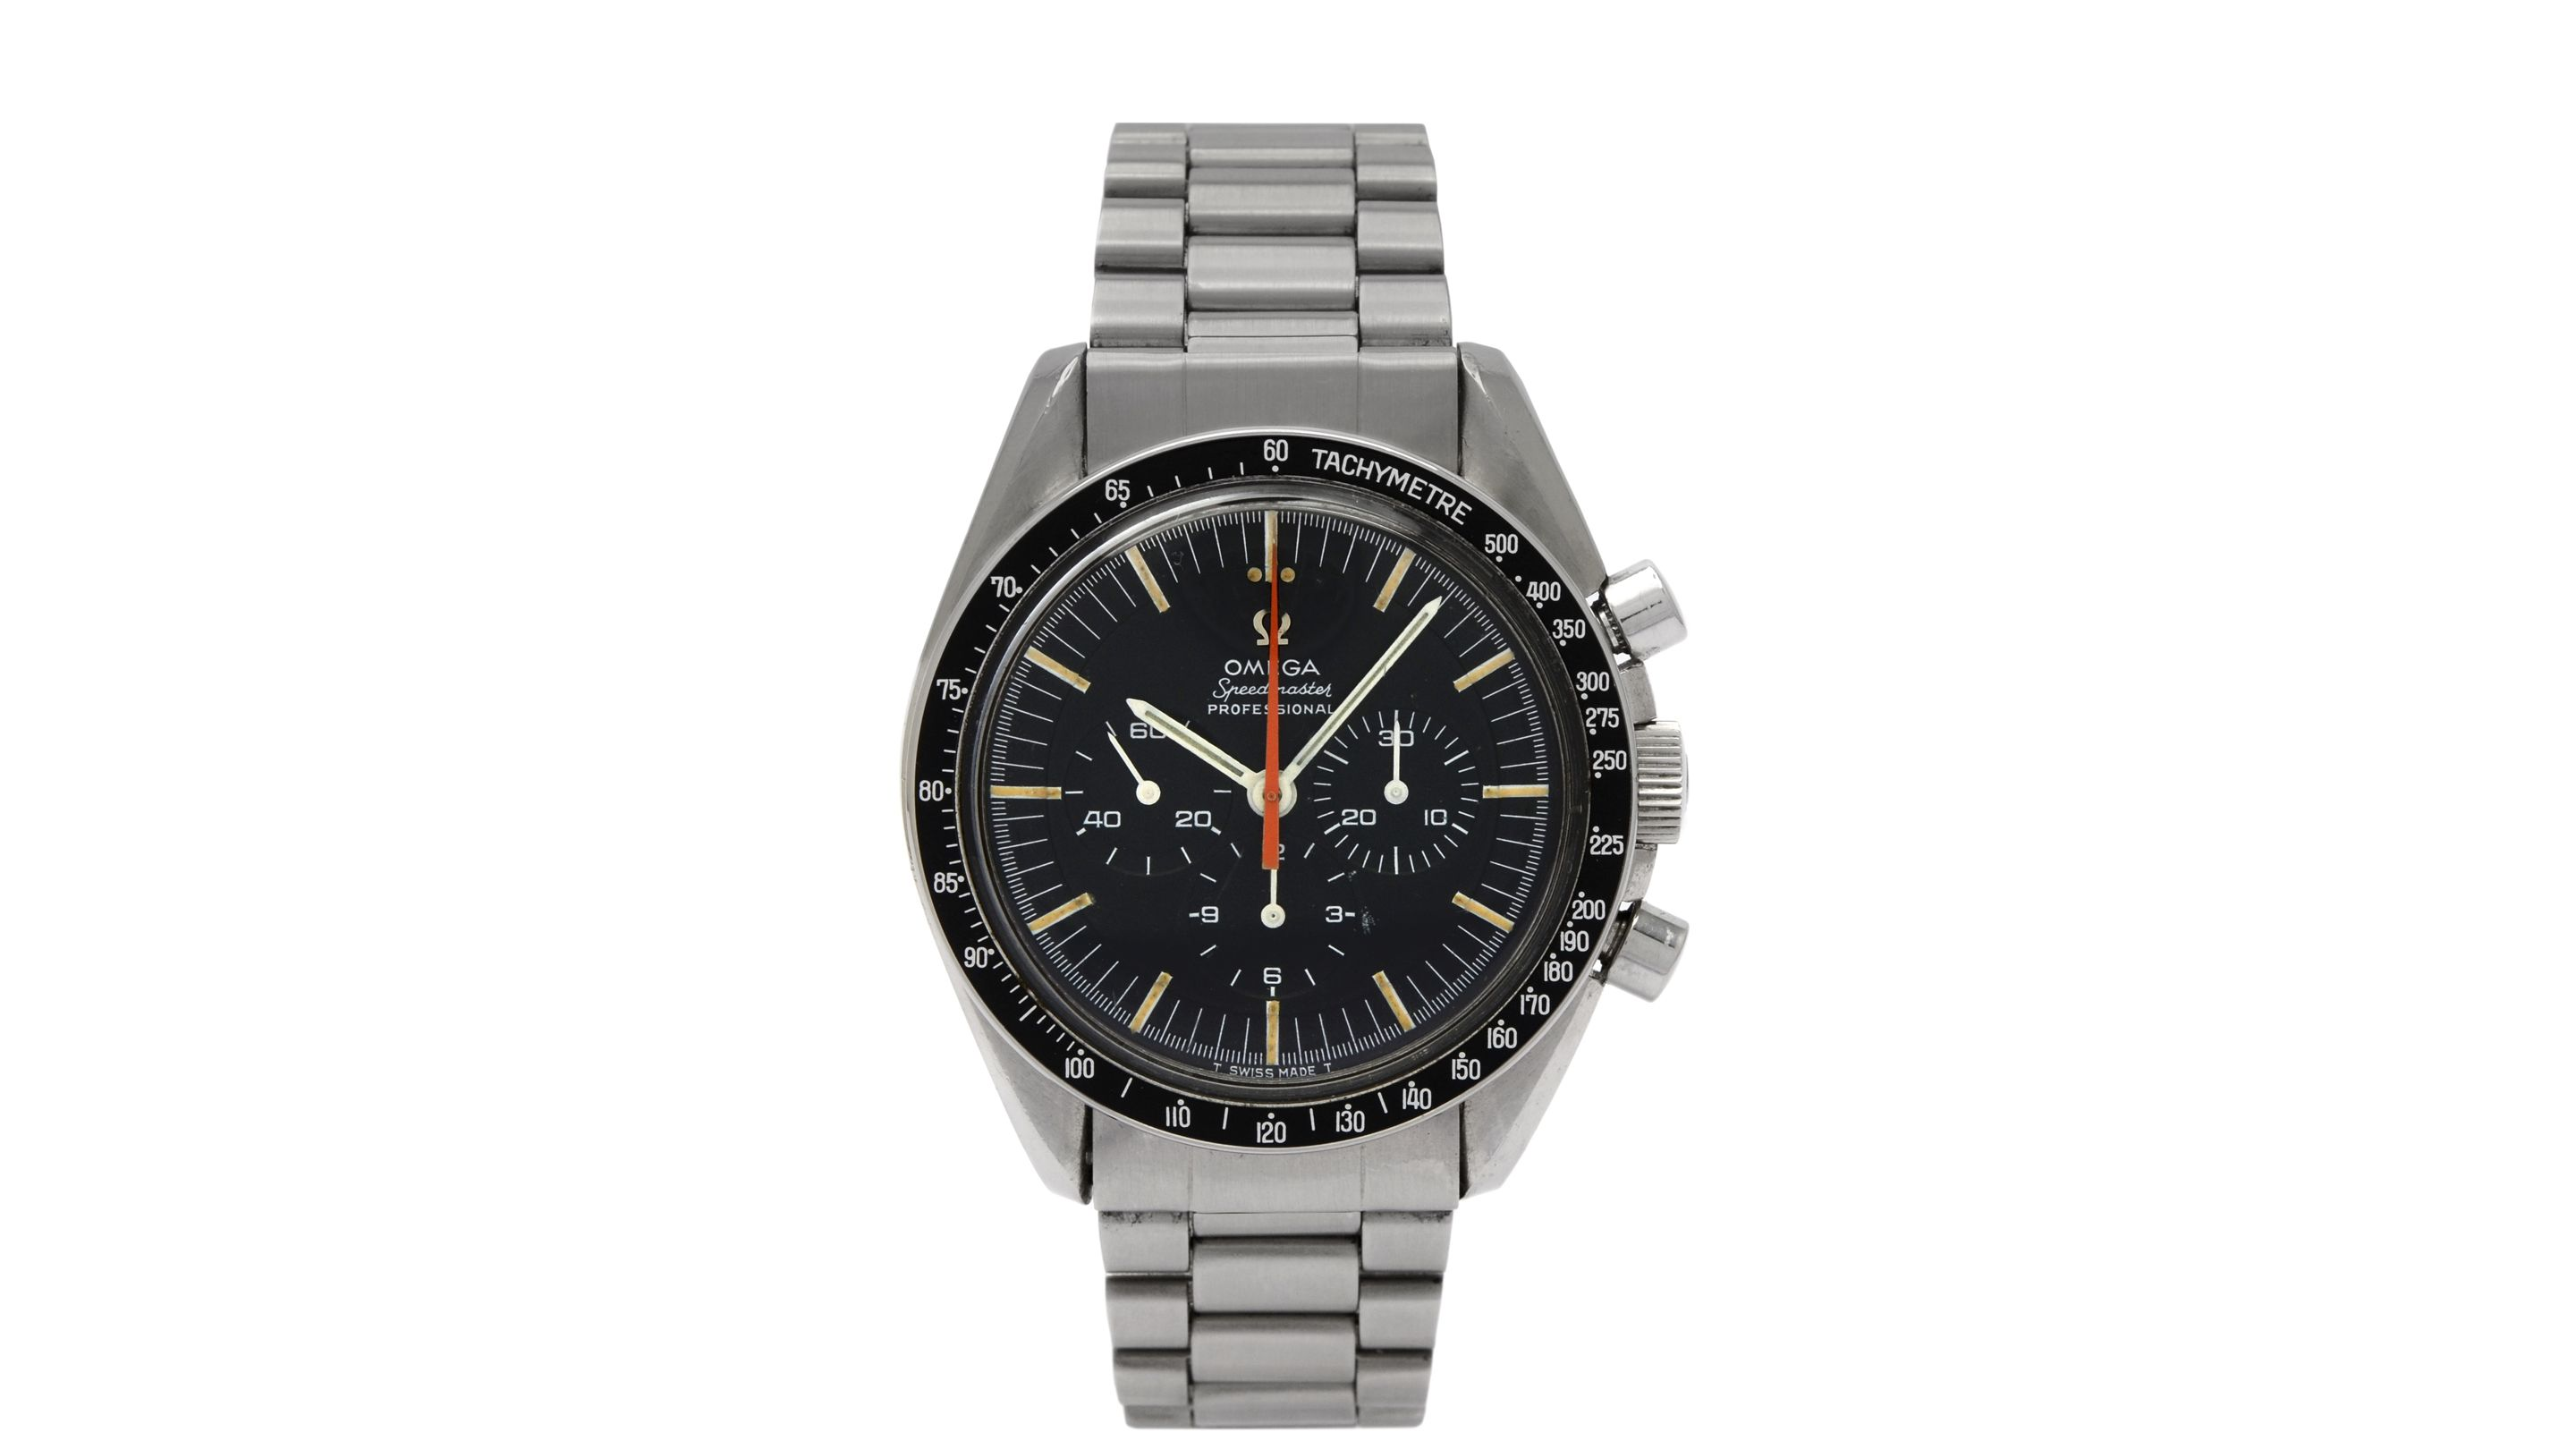 HONDINKEE: Bring a Loupe - A Rare Speedmaster, Two Chronographs With Famous Movements, And A French Diver's Watch